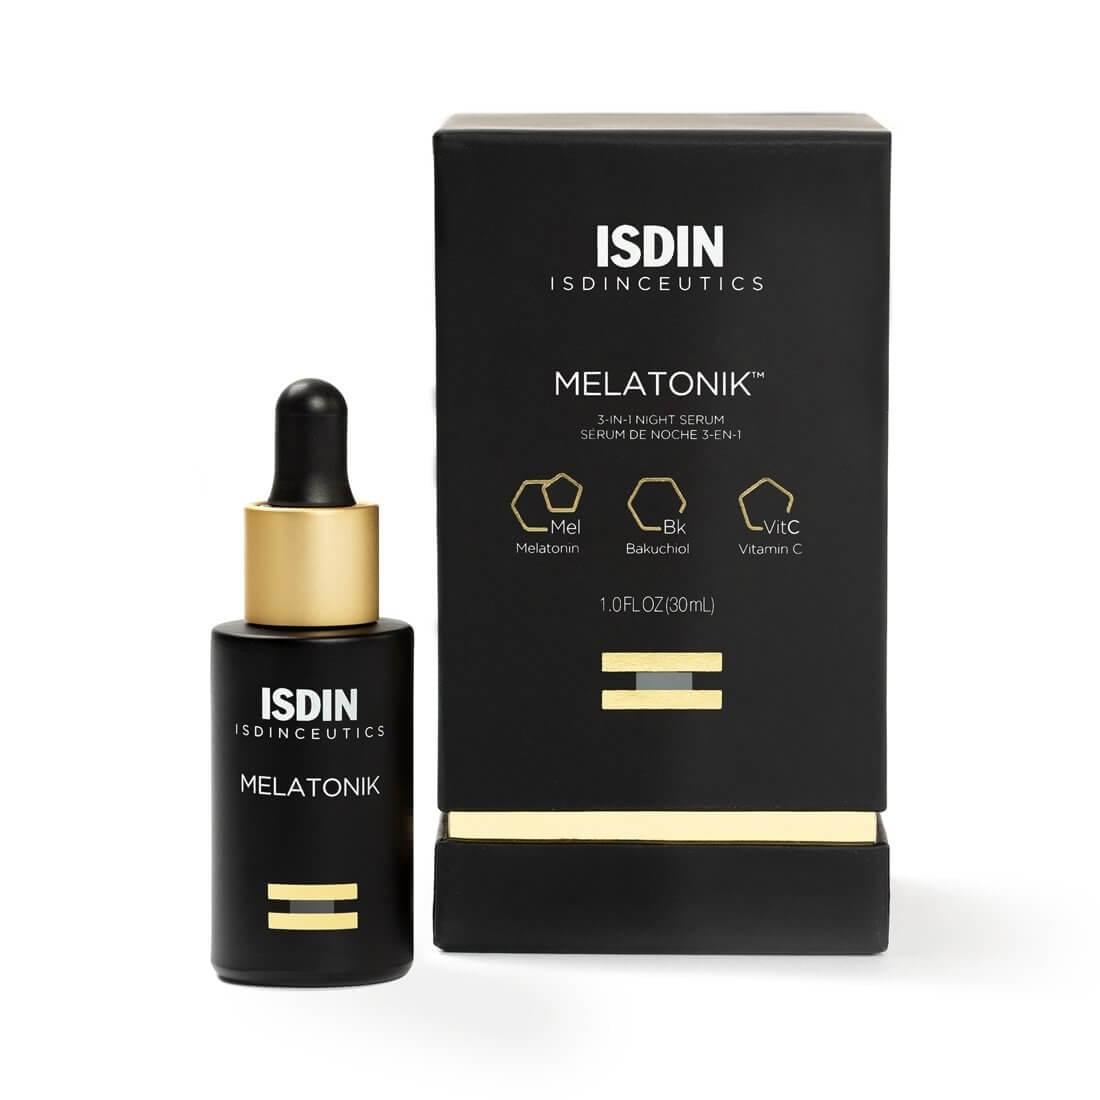 ISDINCEUTICS MELATONIK™ 3-IN-1 NIGHT SERUM